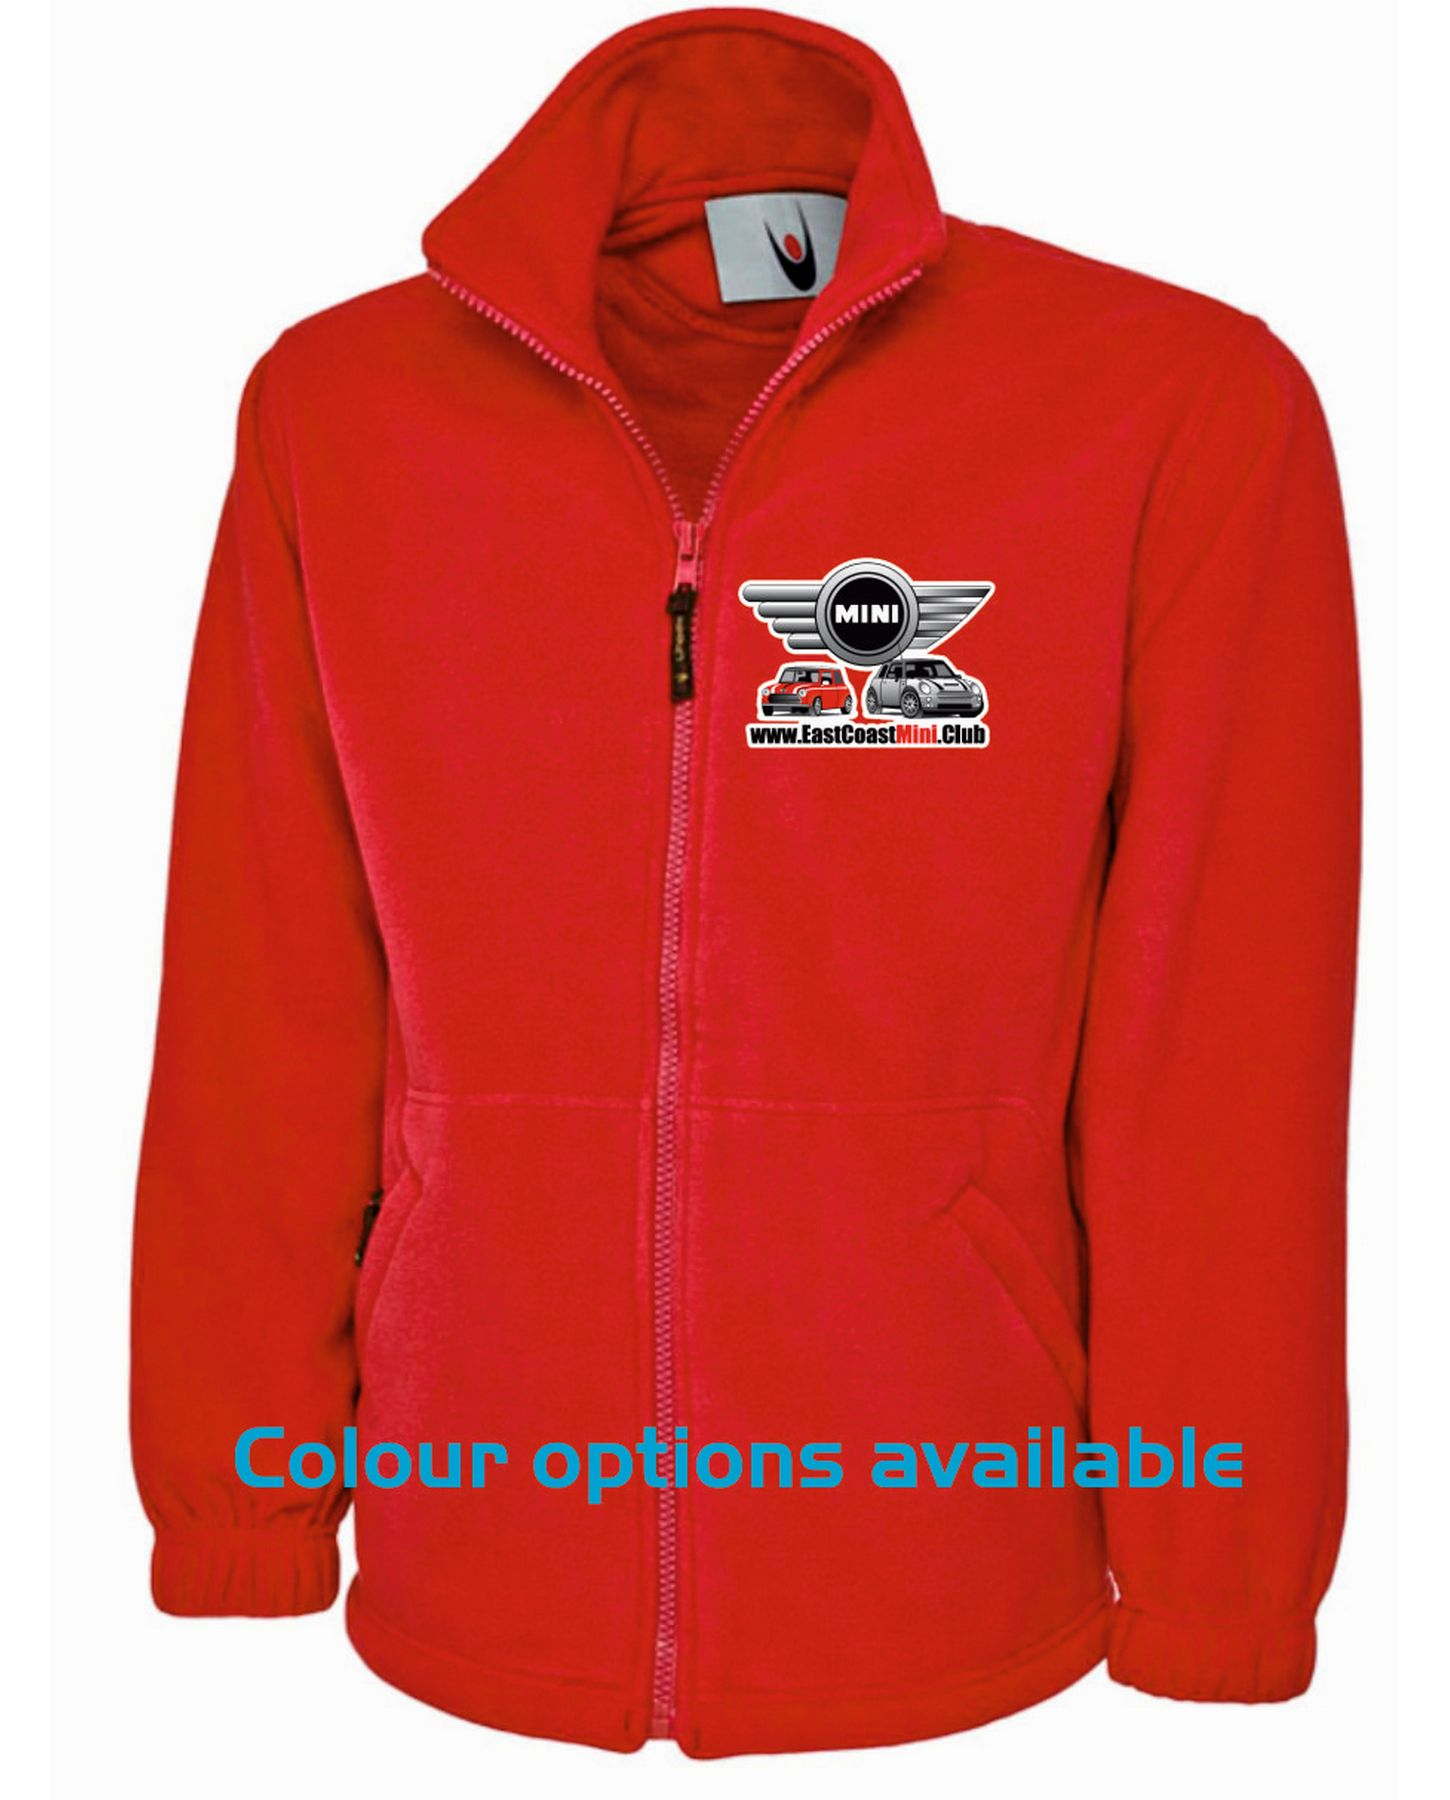 East Coast Mini Club – Fleece Adult